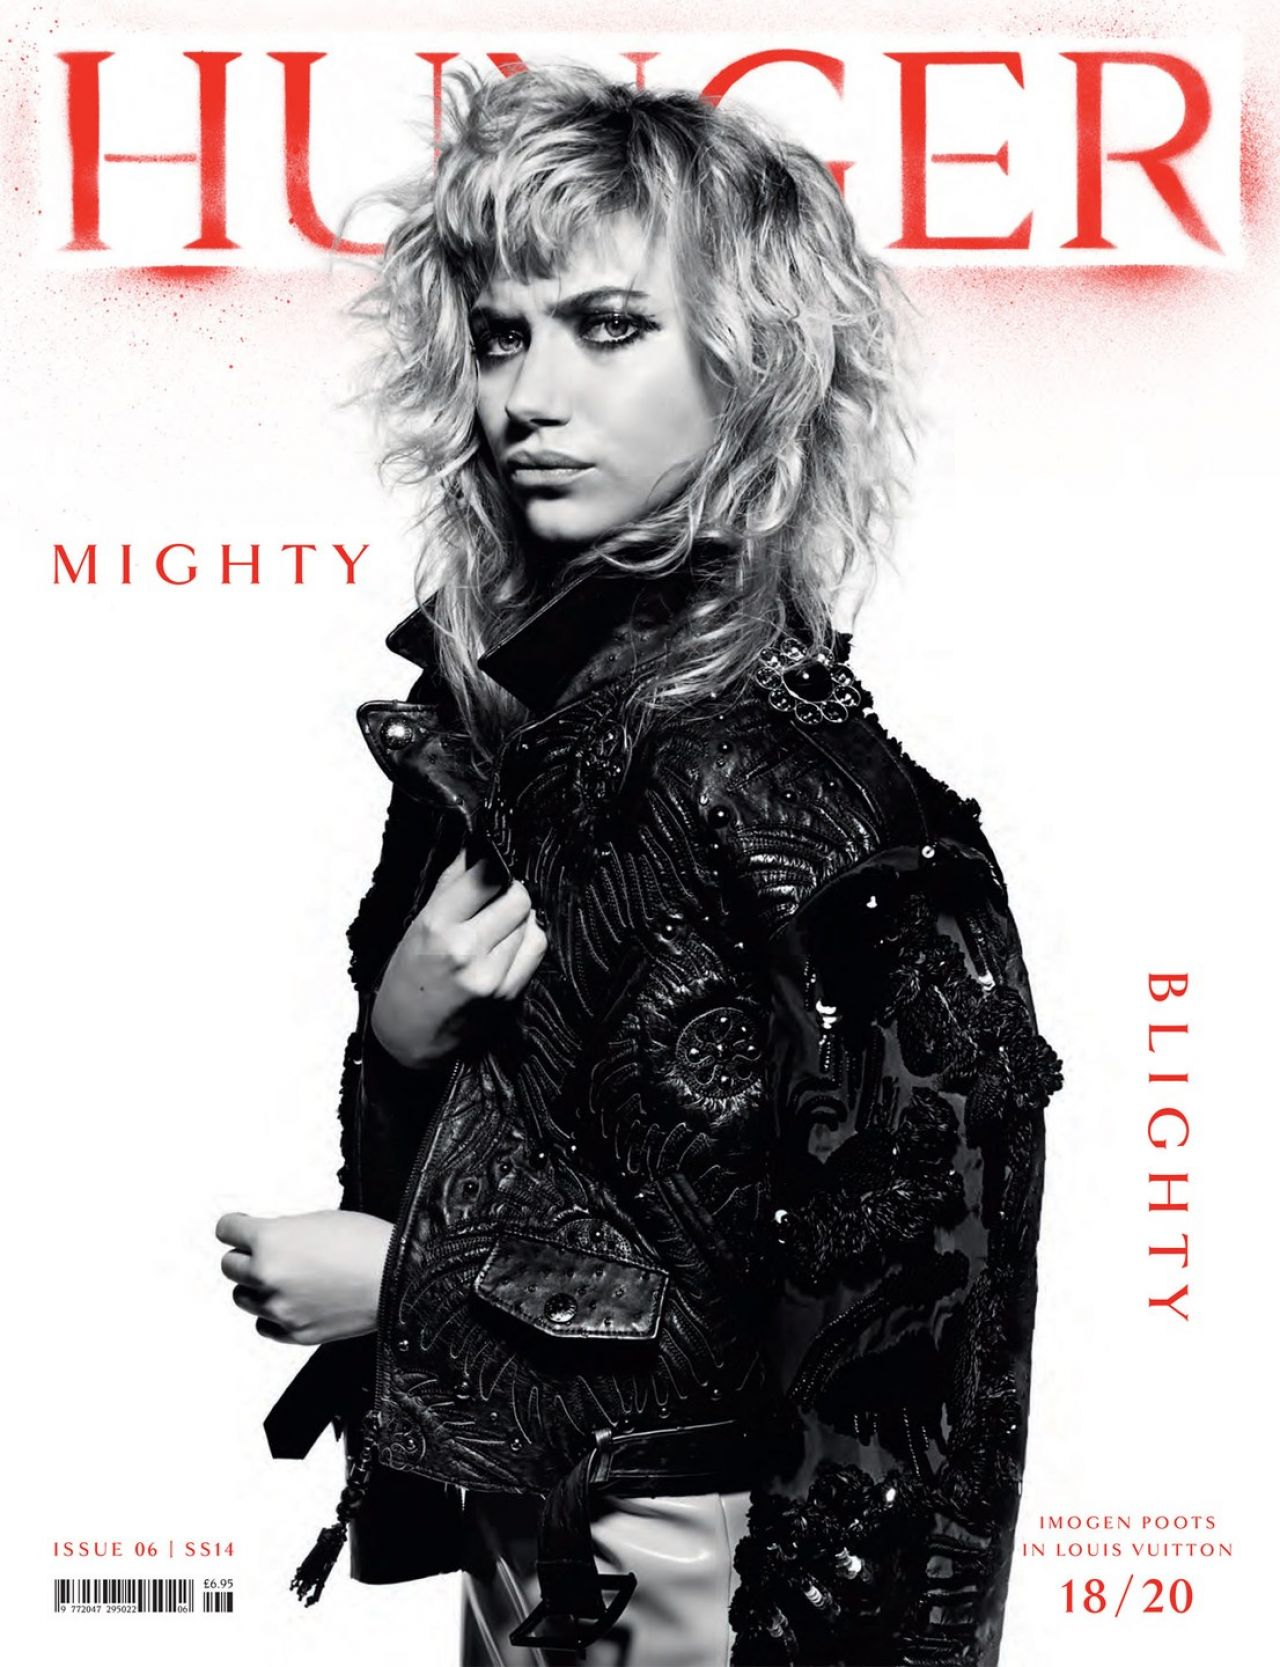 Imogen Poots - Hunger Magazine - Spring/Summer 2014 Issue